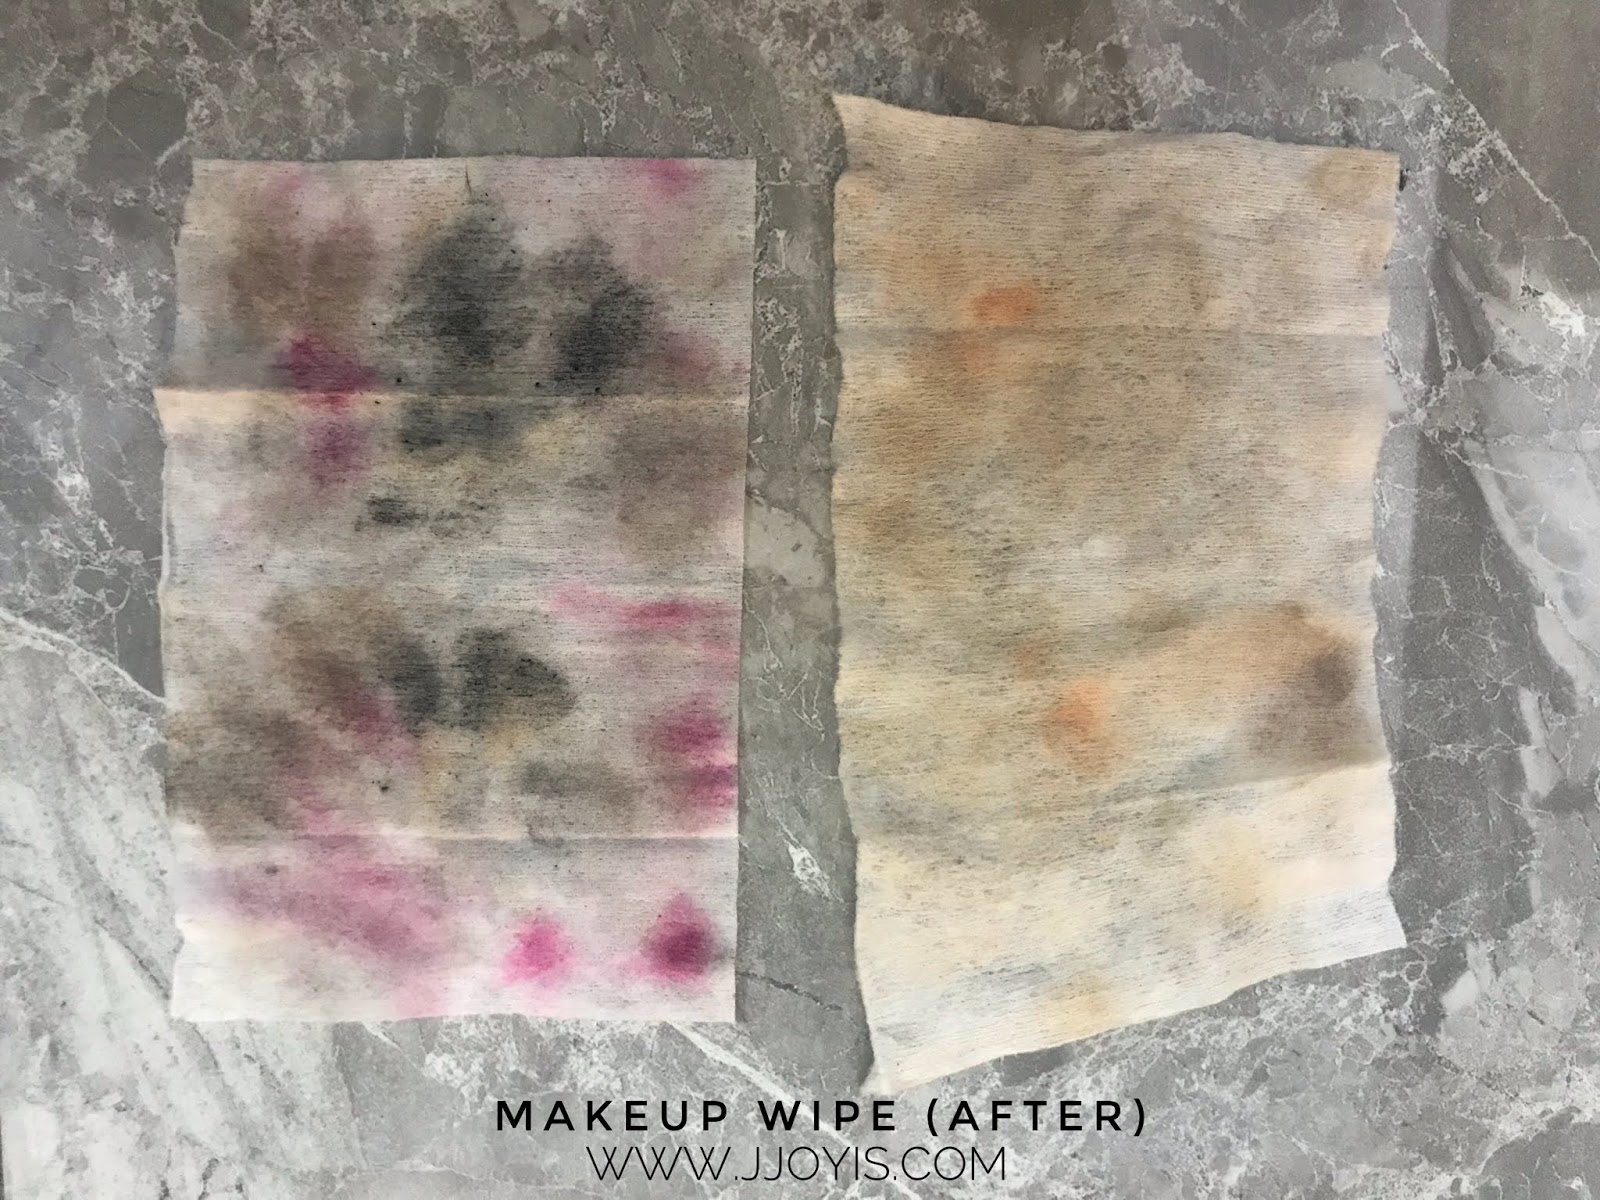 cybercolors make up wipes review results